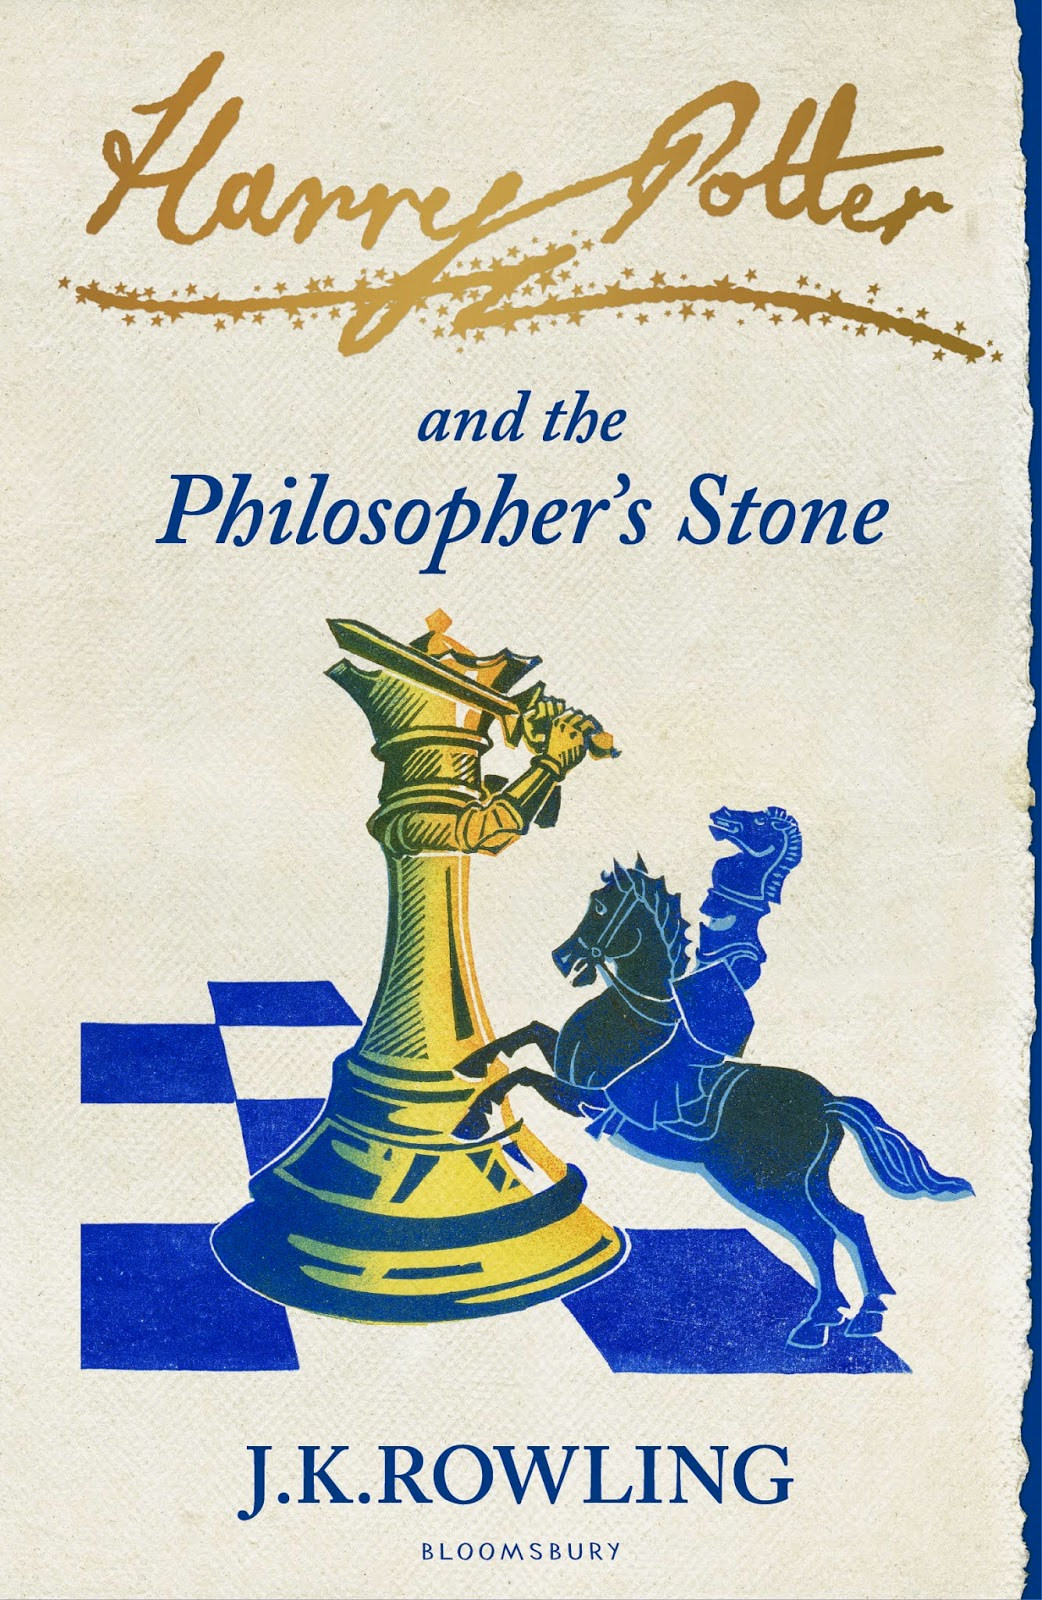 http://www.bookdepository.com/Harry-Potter-Philosophers-Stone-Rowling/9781408810545/?a_aid=jbblkh